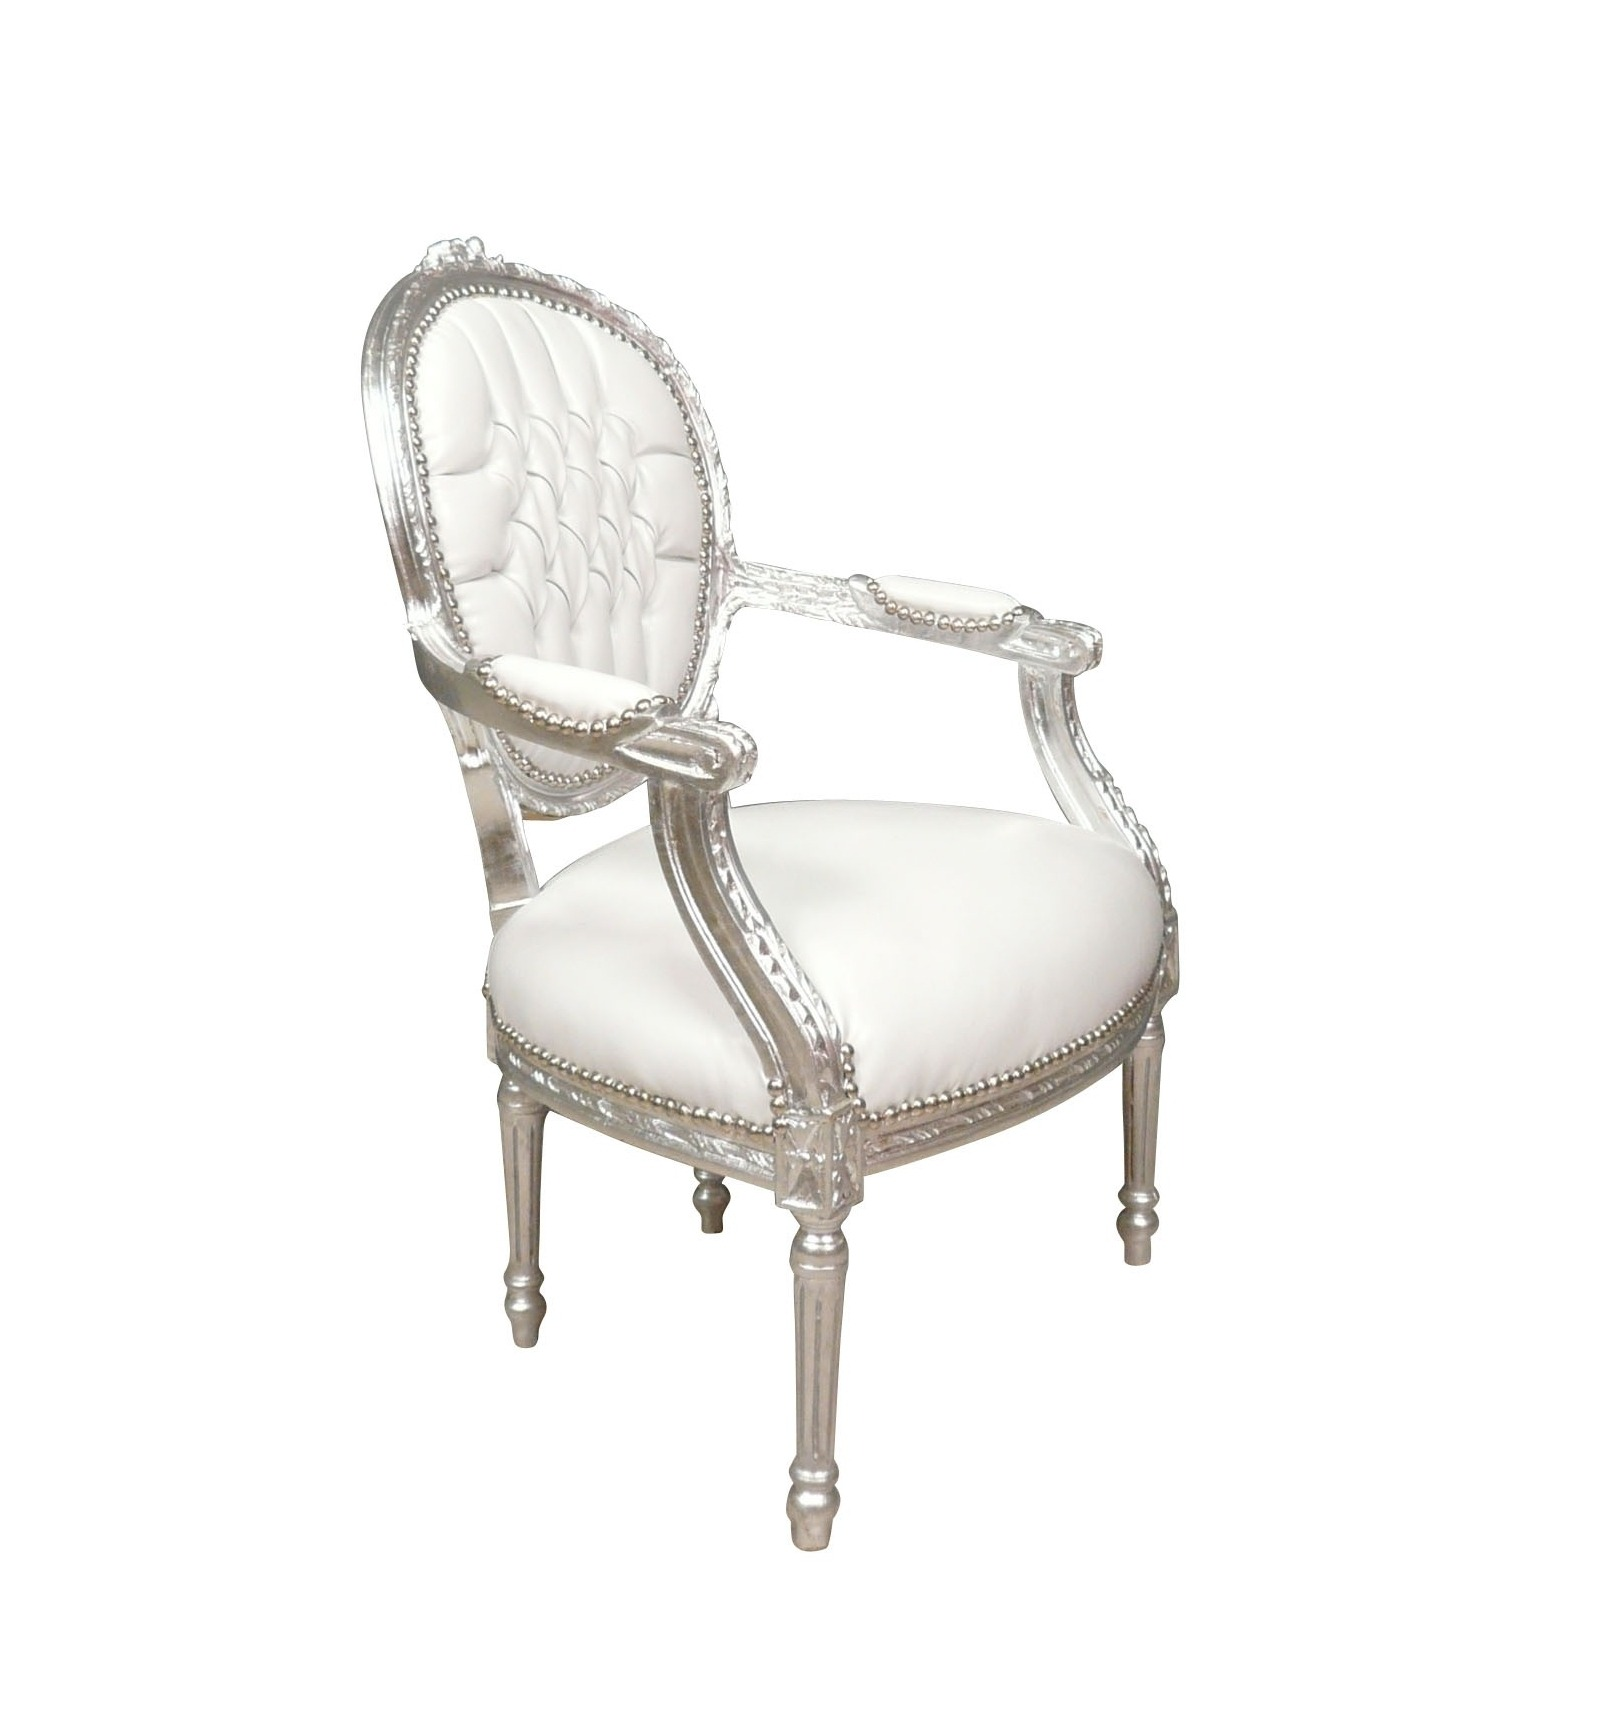 fauteuil baroque blanc style louis xvi chaise. Black Bedroom Furniture Sets. Home Design Ideas